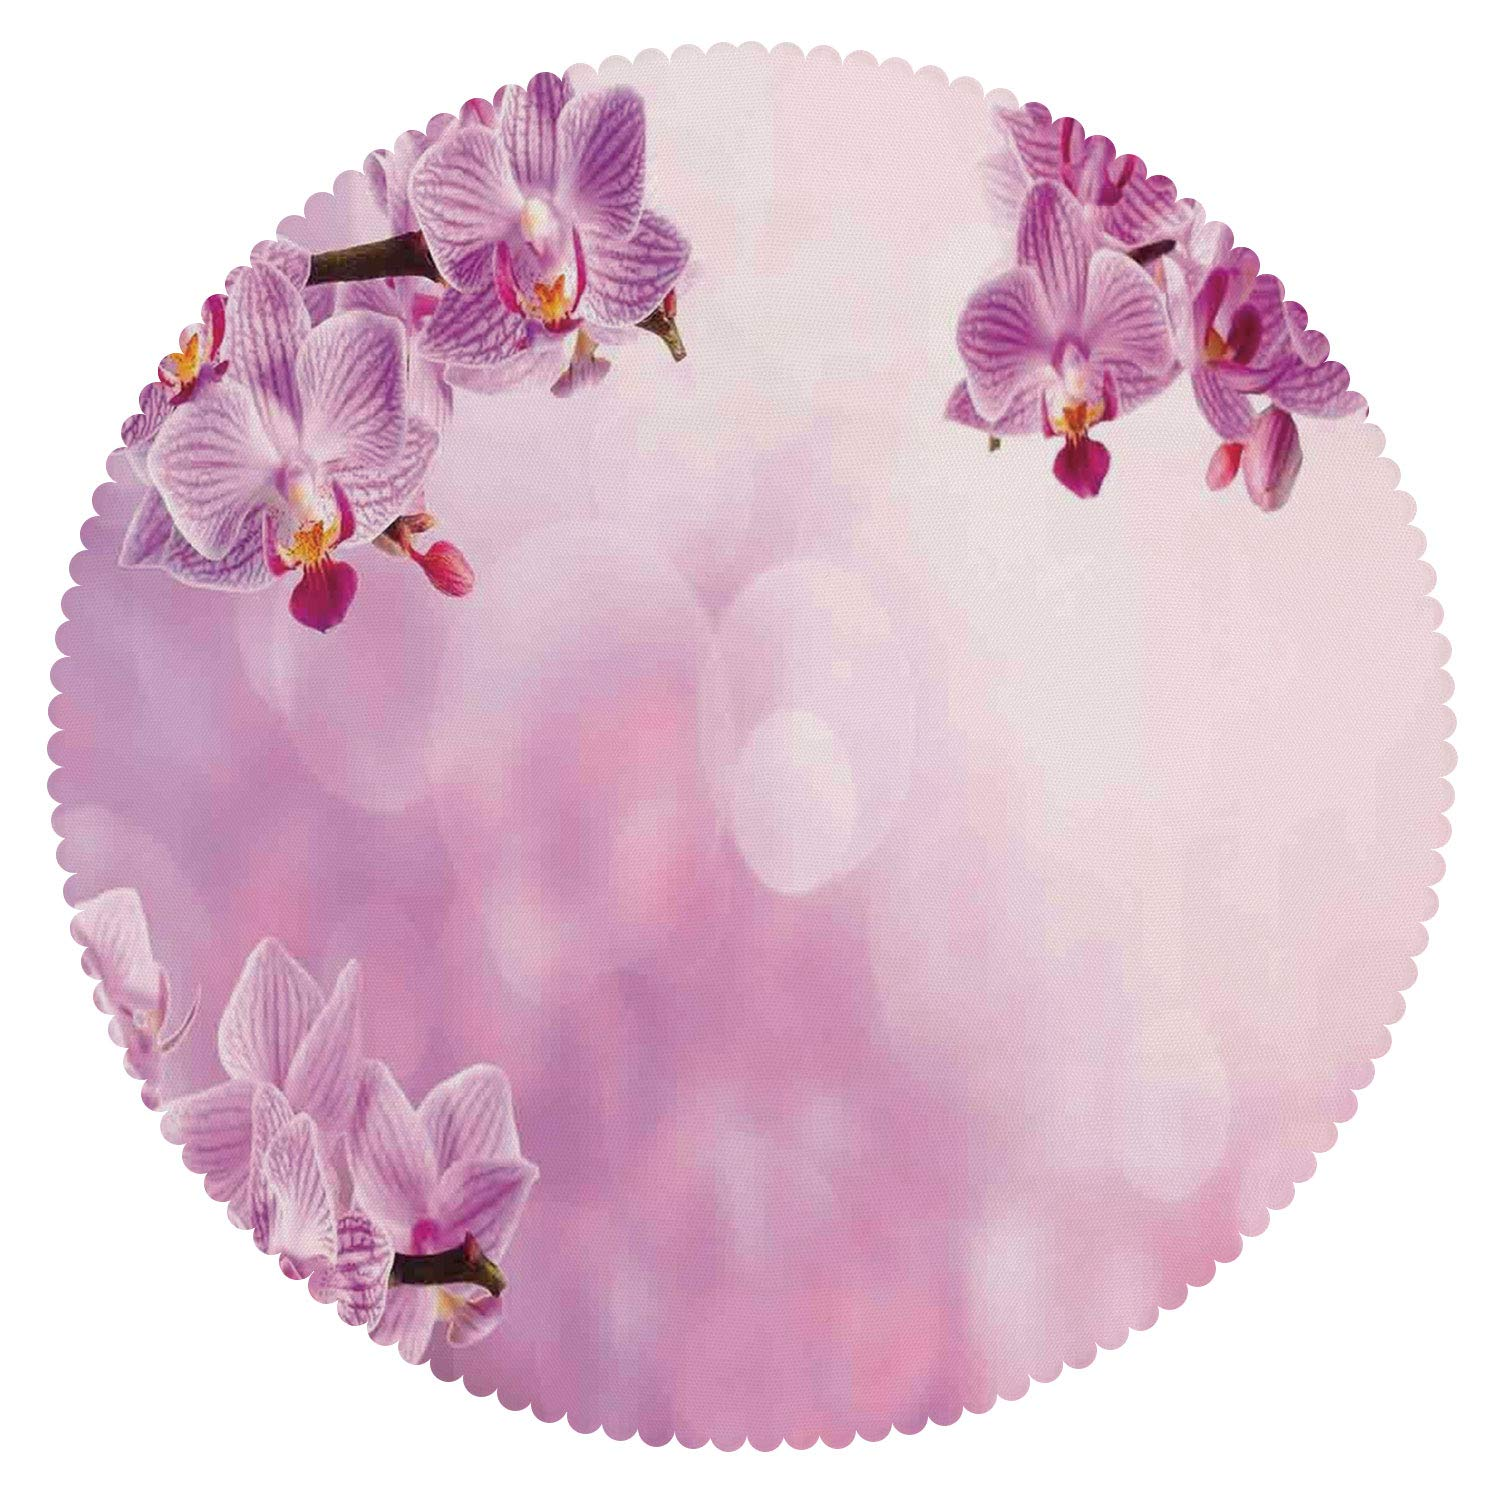 Durable Round Tablecloth [ Spa Decor,Wild Orchid Petals in Monochrome Design Bouquet Spring Bloom Seedling Growth Peaceful Nature Print,Pink ] Decorative Tablecloth Ideas